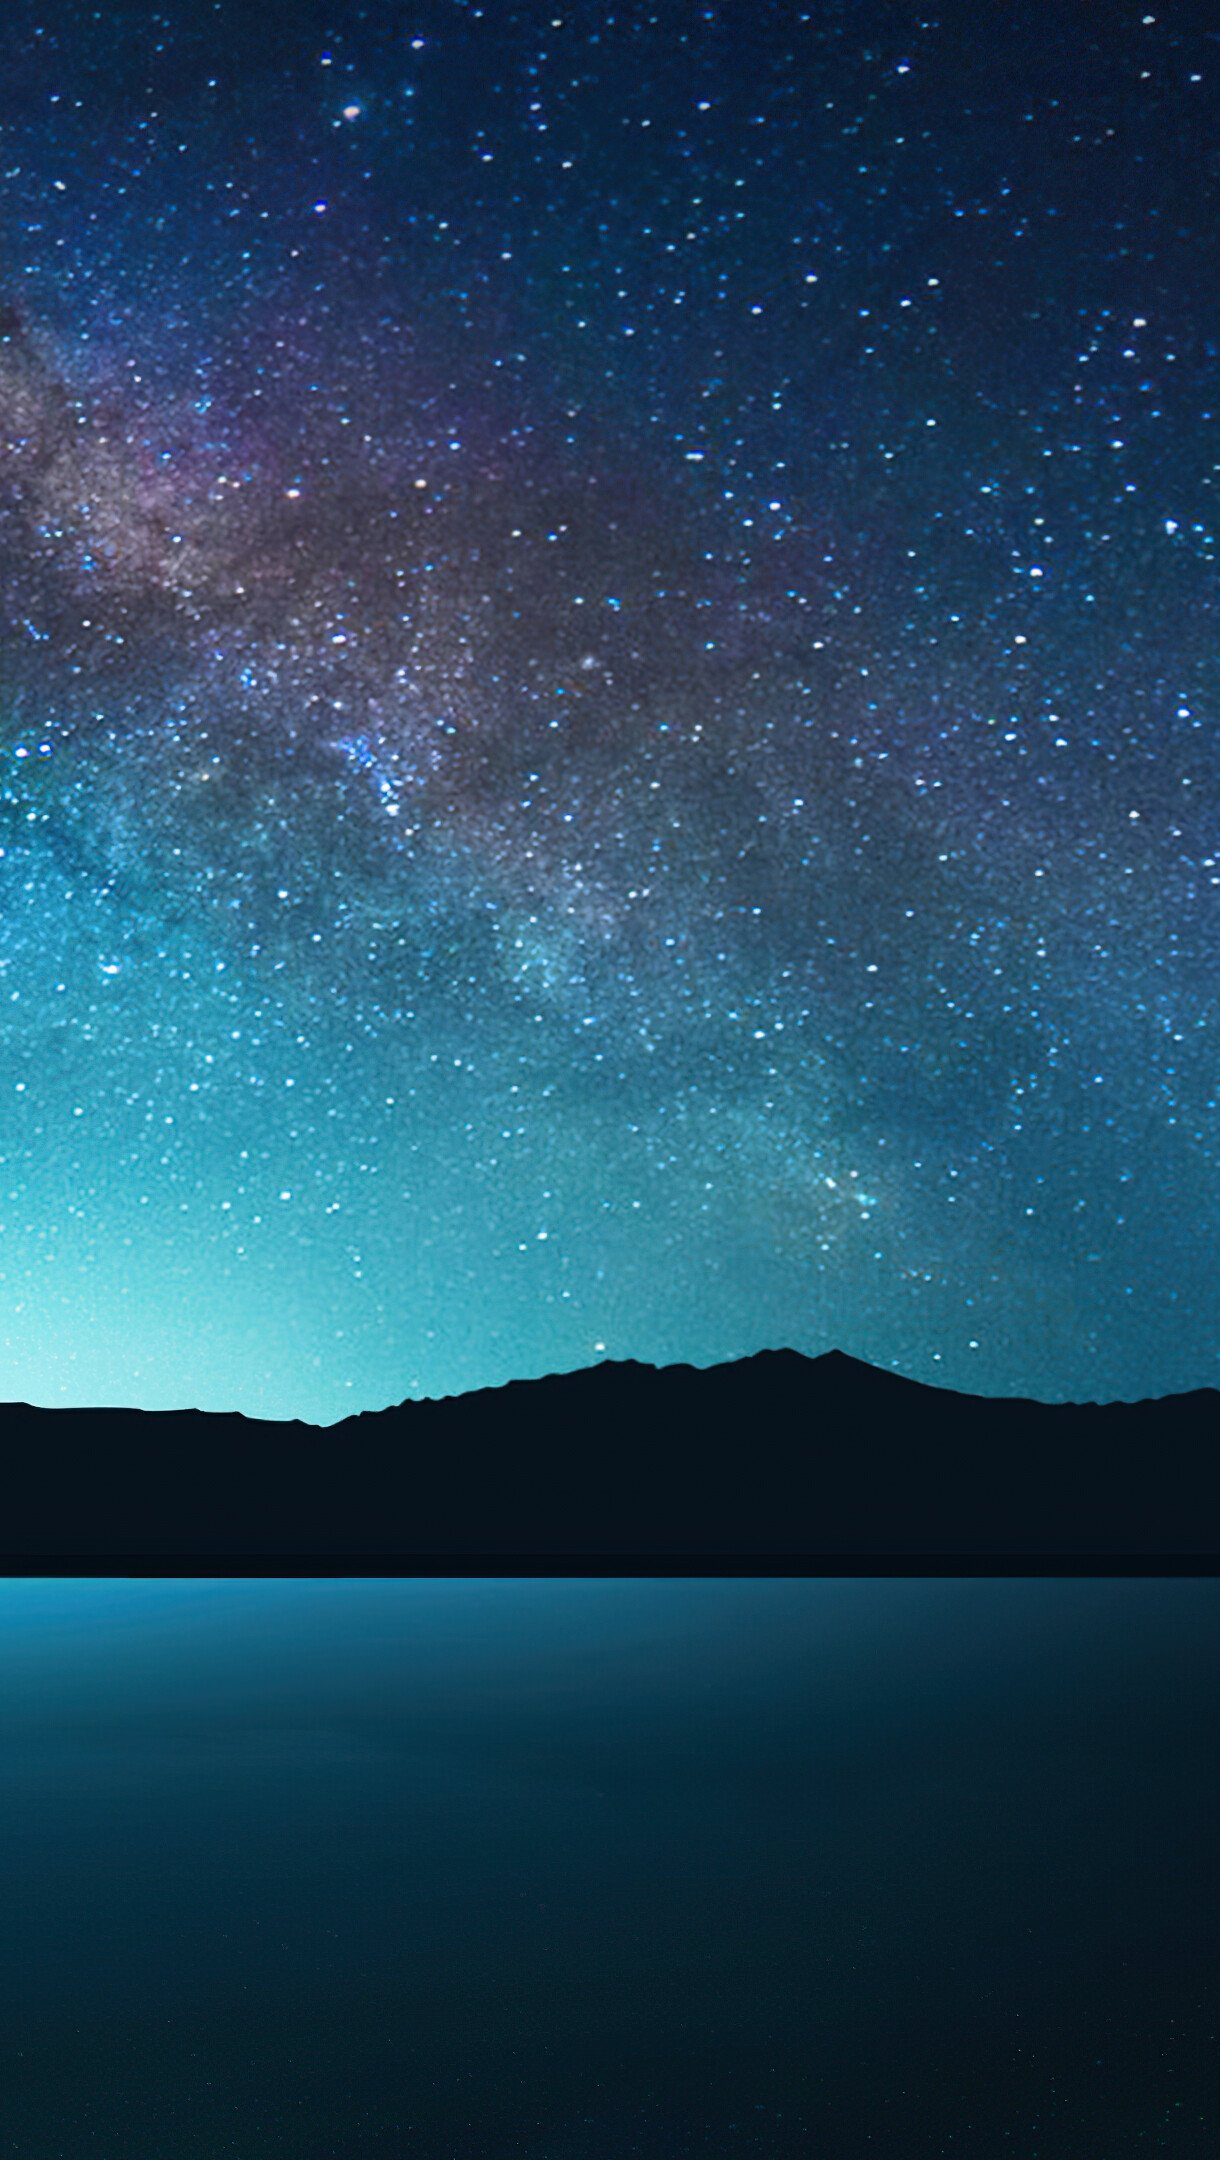 Wallpaper Night with stars Vertical